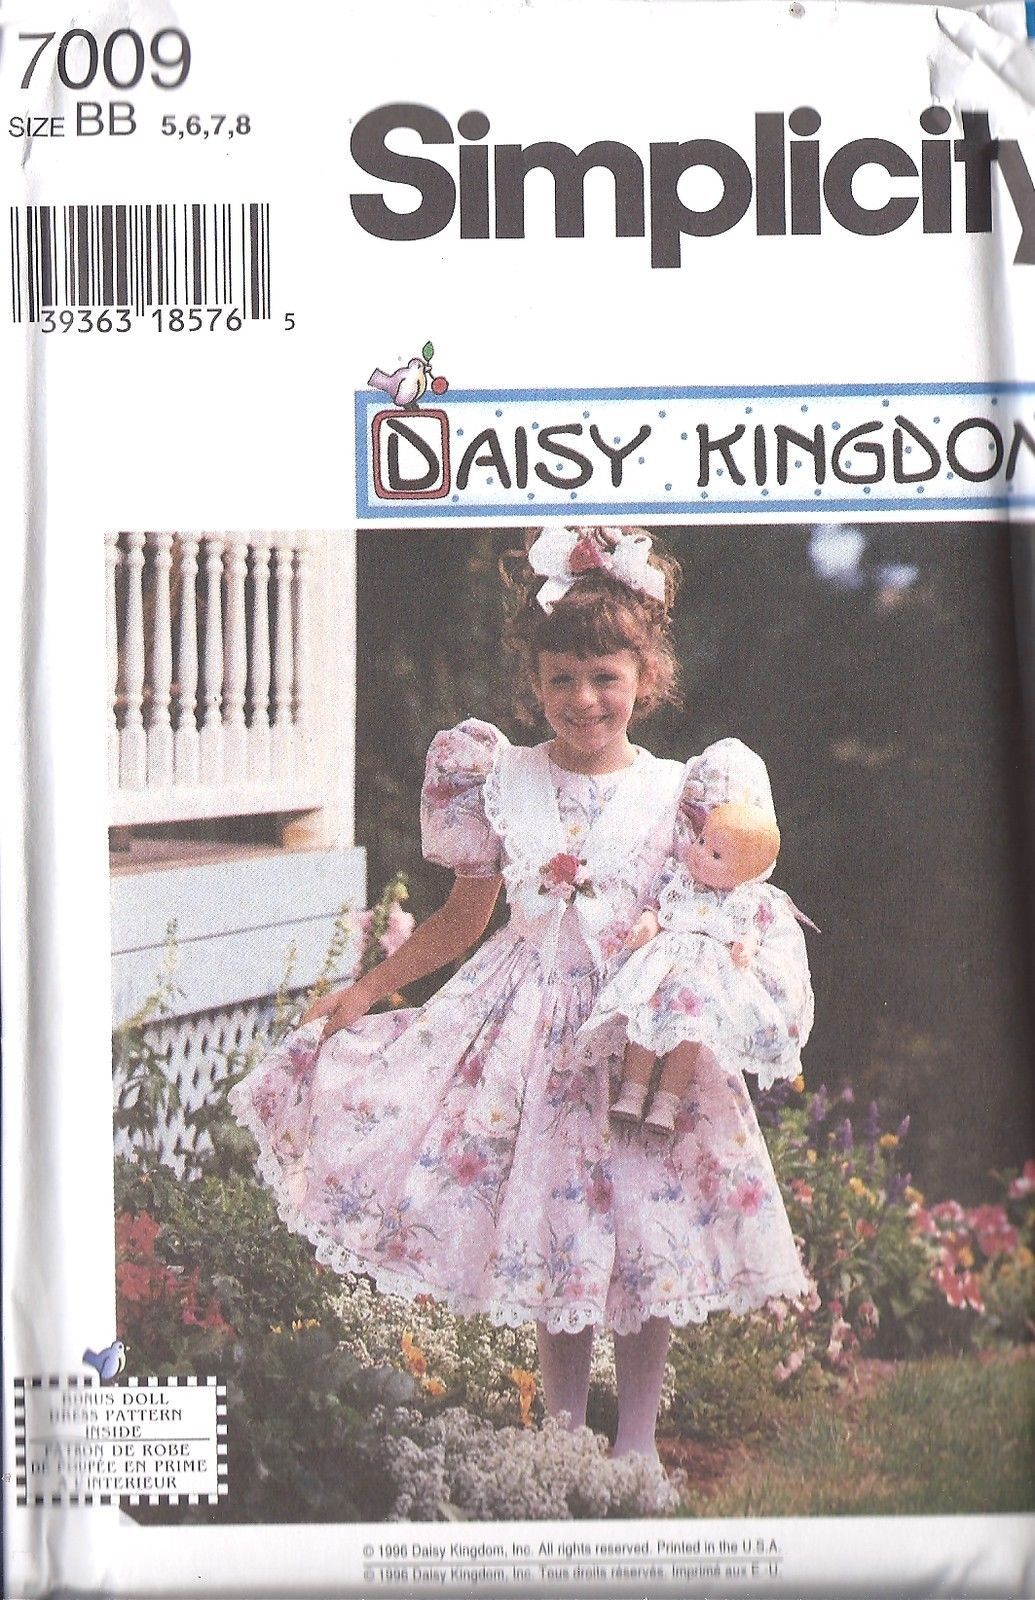 7009 UNCUT Simplicity Vintage Sewing Pattern Girls Daisy Kingdom Dress + Doll FF